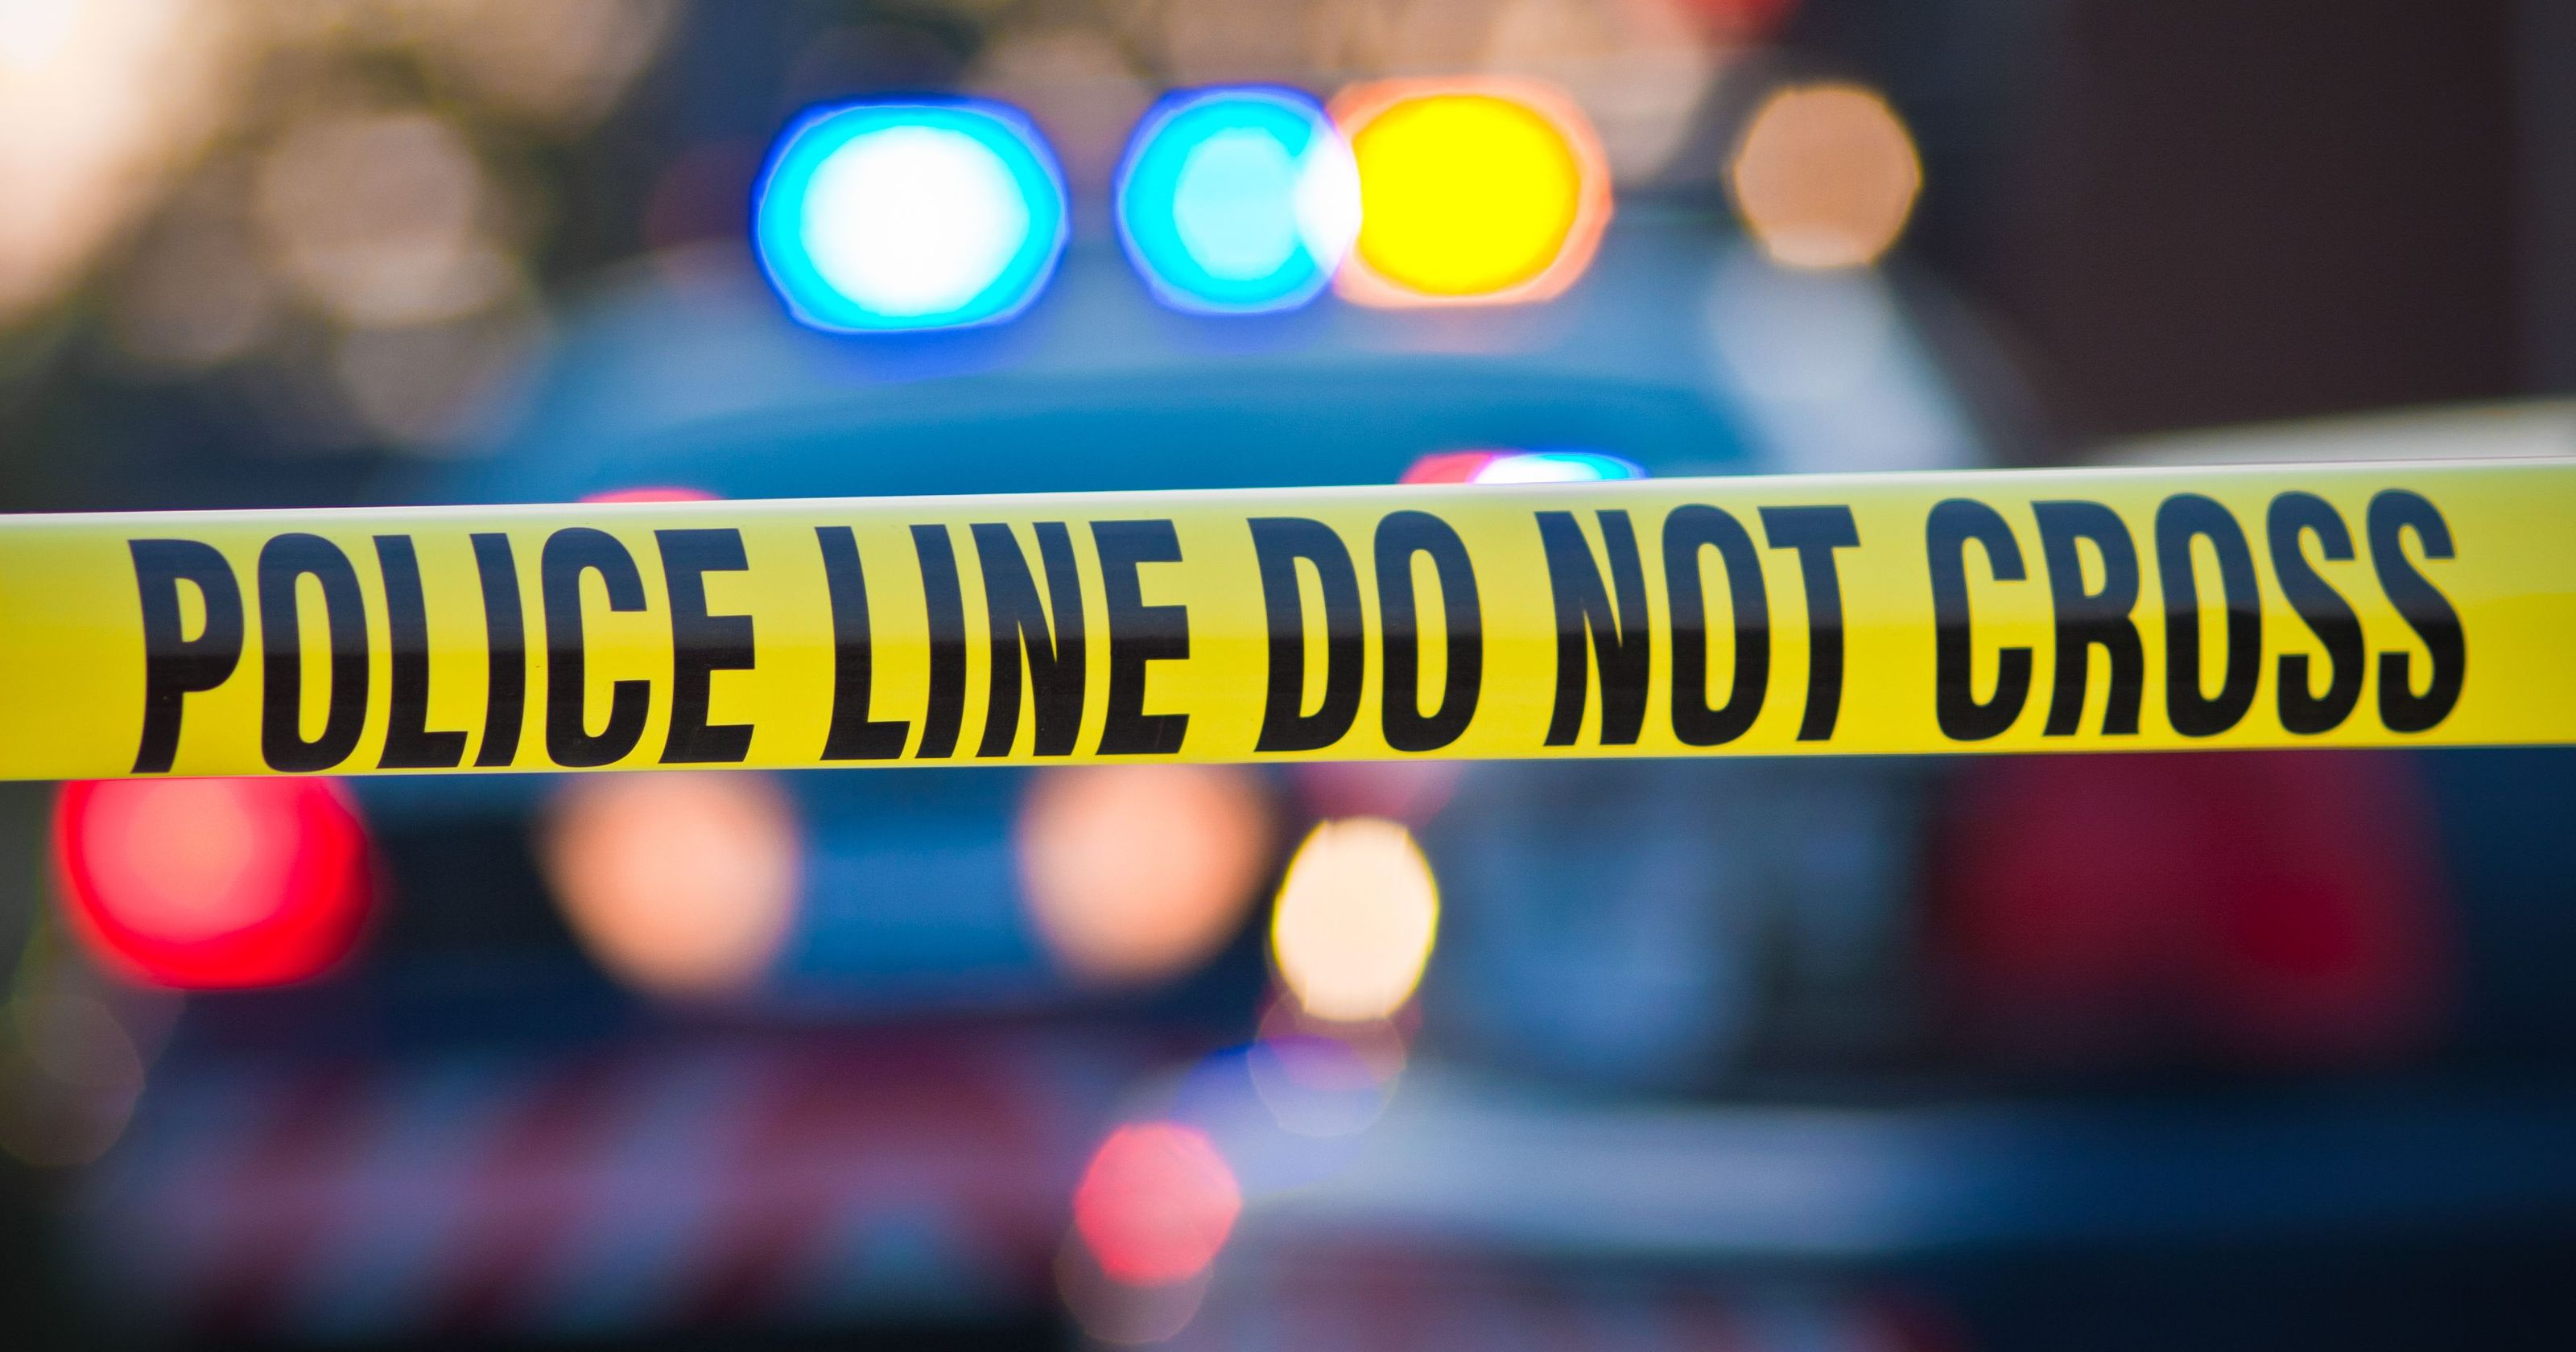 At least 1 dead, 4 injured in downtown Denver shooting, authorities say